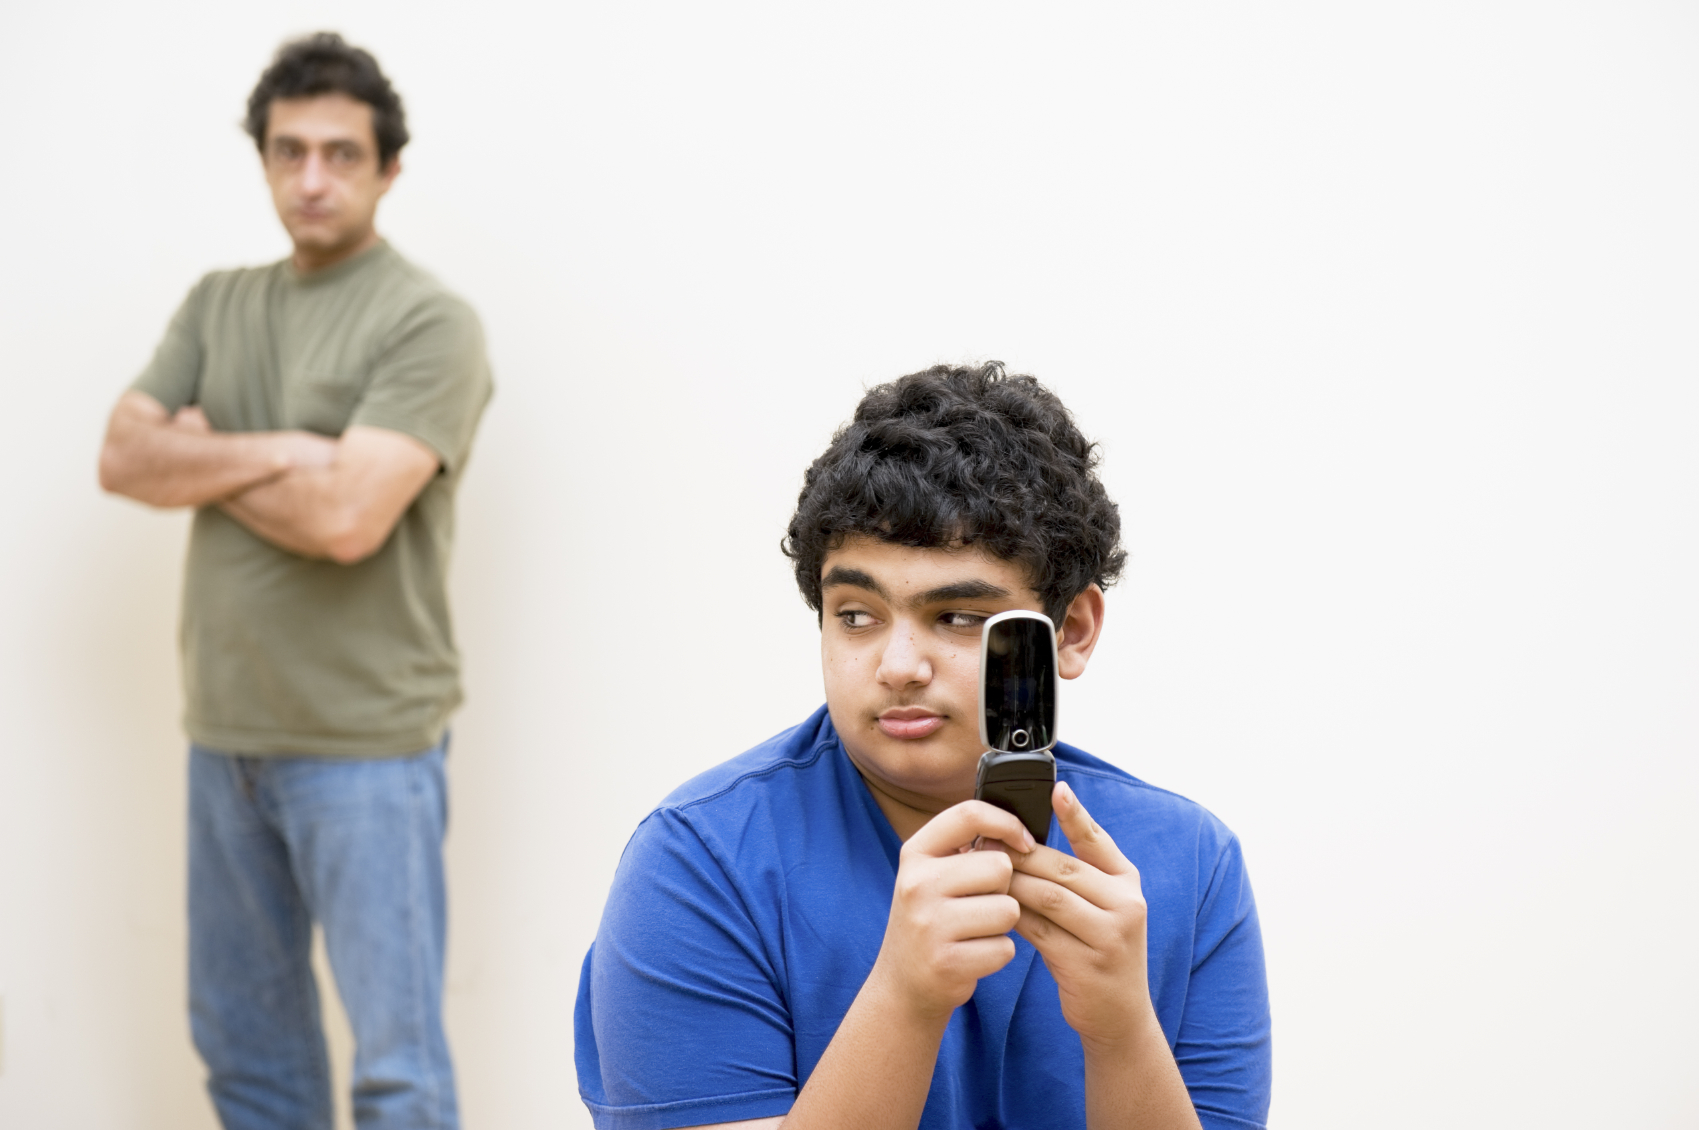 teen_texting_dad_in_background